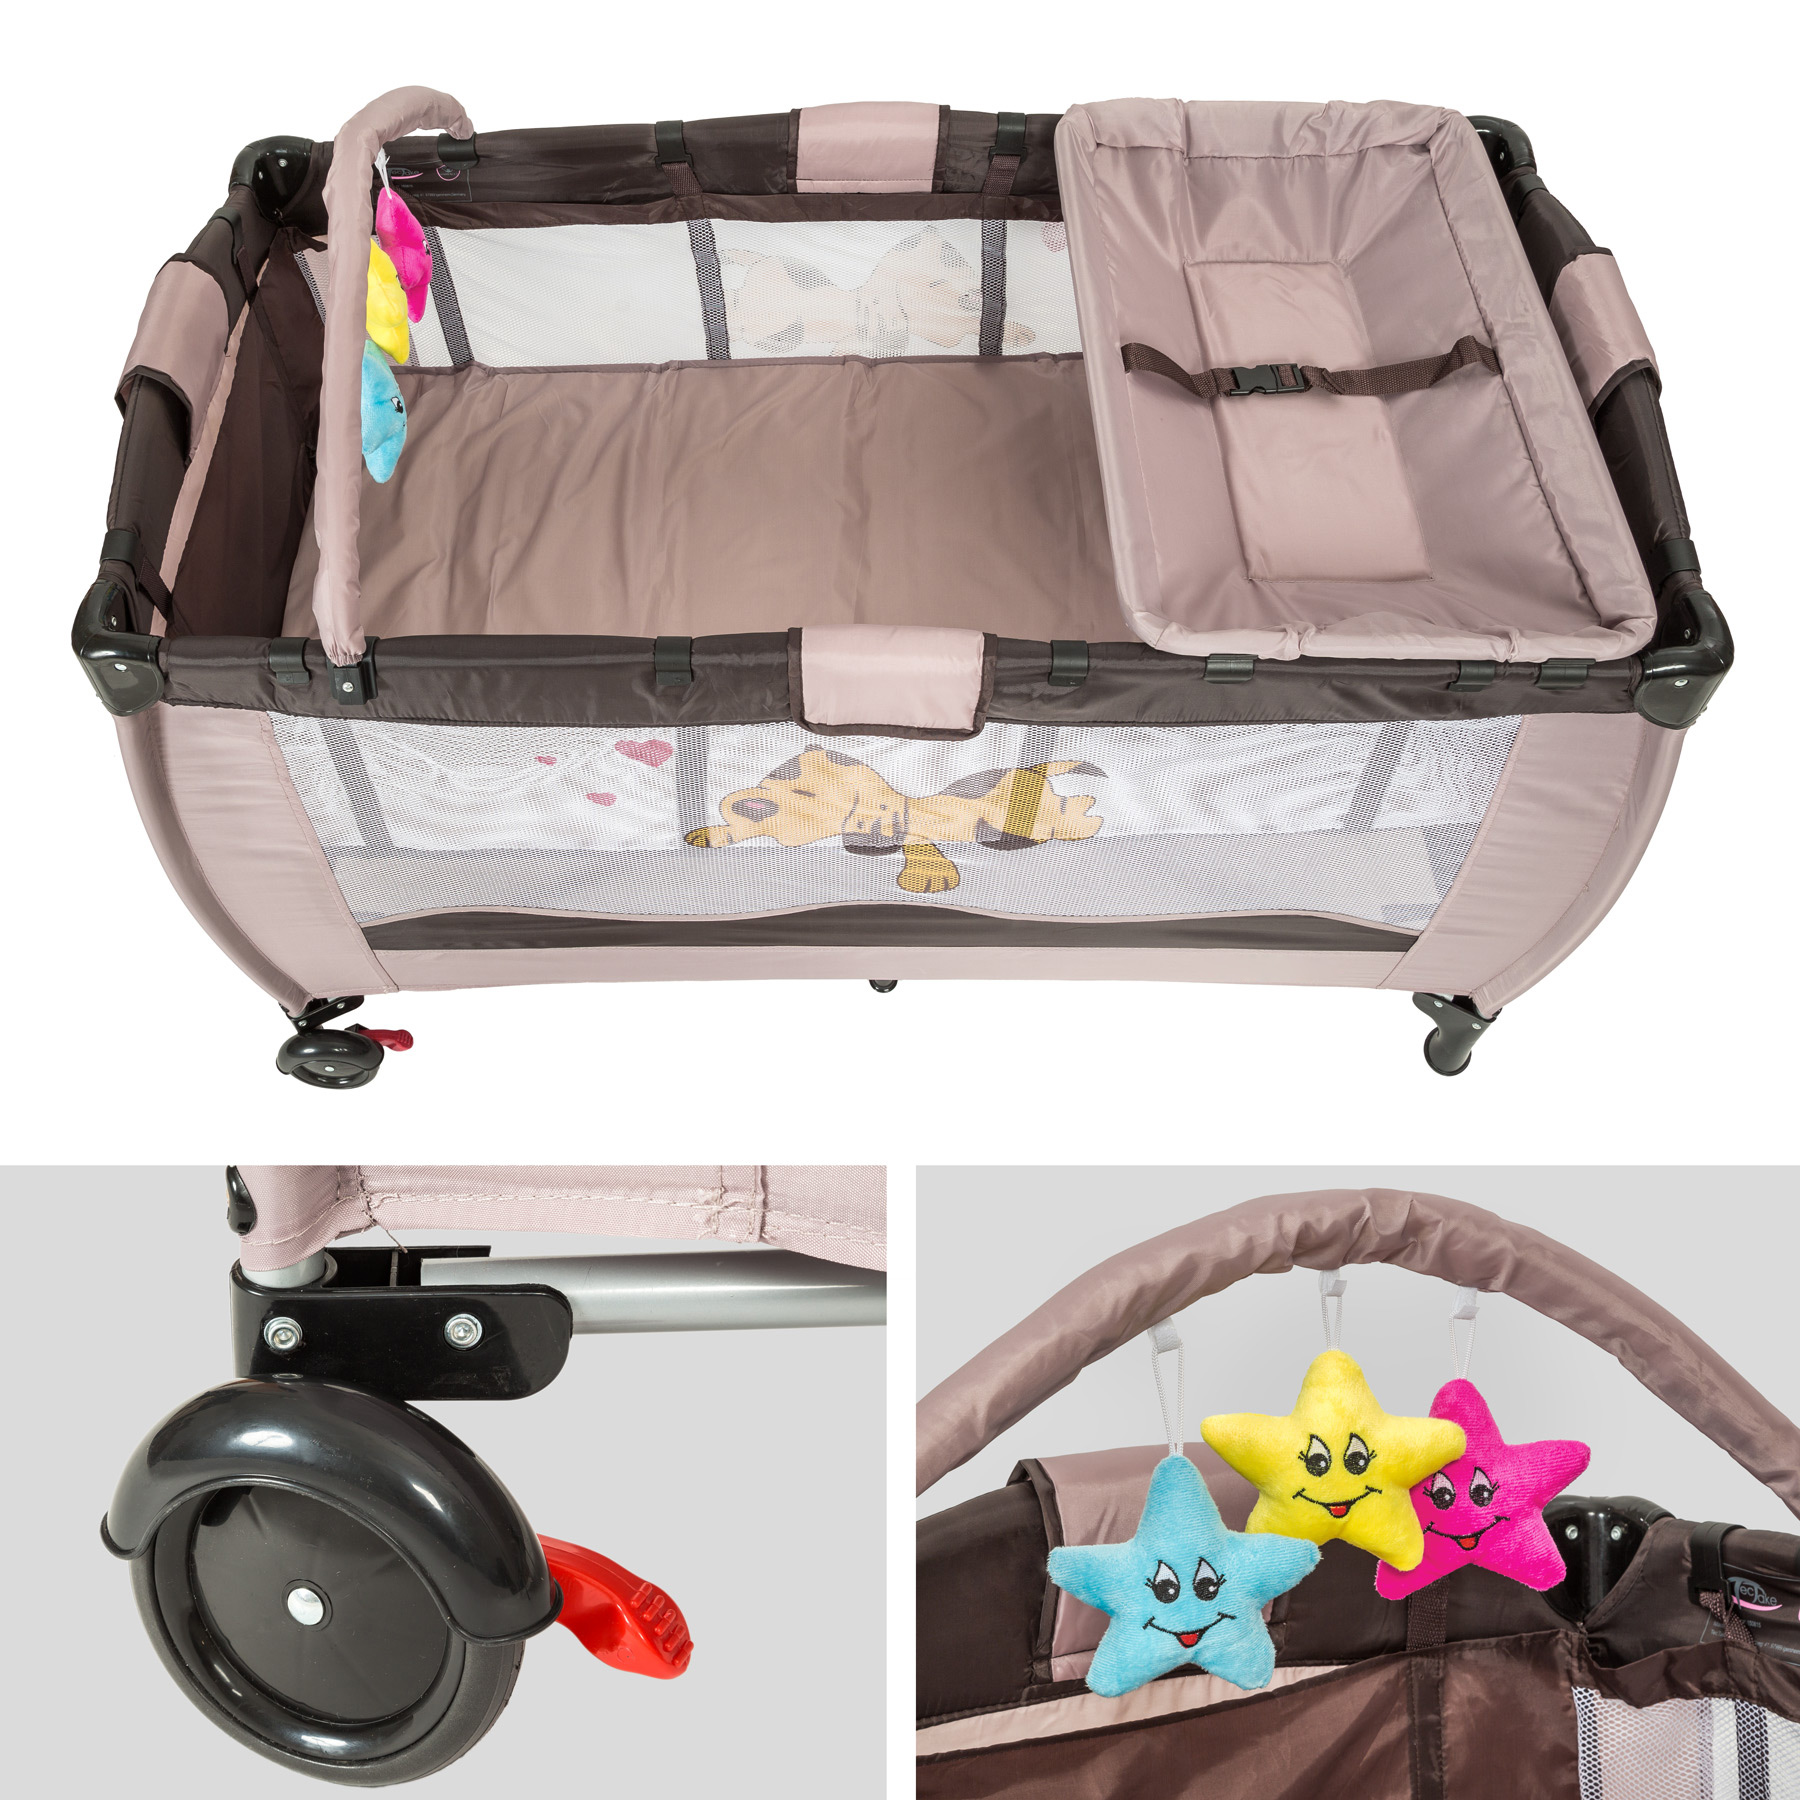 Whole Sale Portable Baby Crib Nursery Travel Folding Bed Bag Infant Toddler Cradle Multifunction Storage Bag For Baby Care HWC